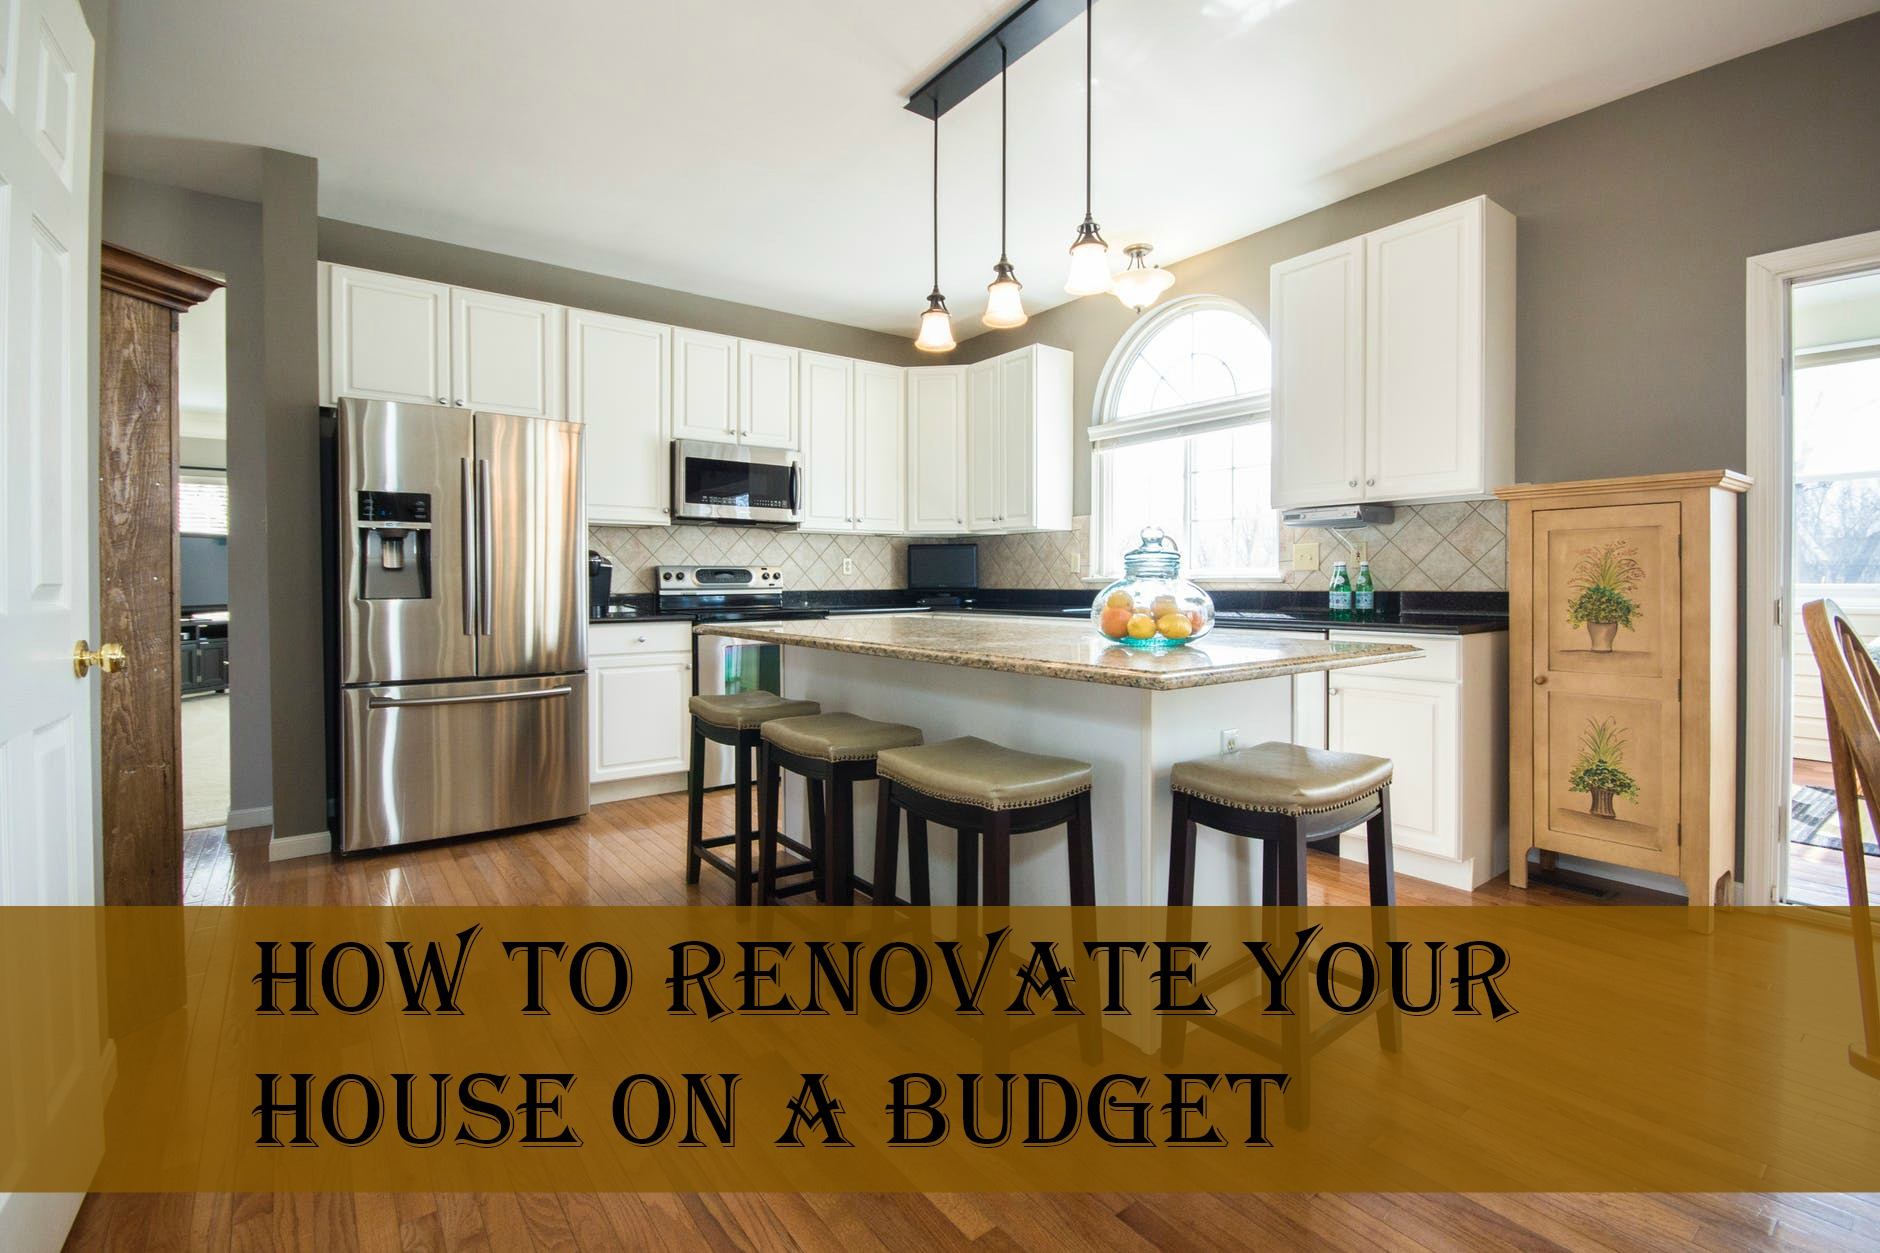 How to Renovate Your House On A Budget